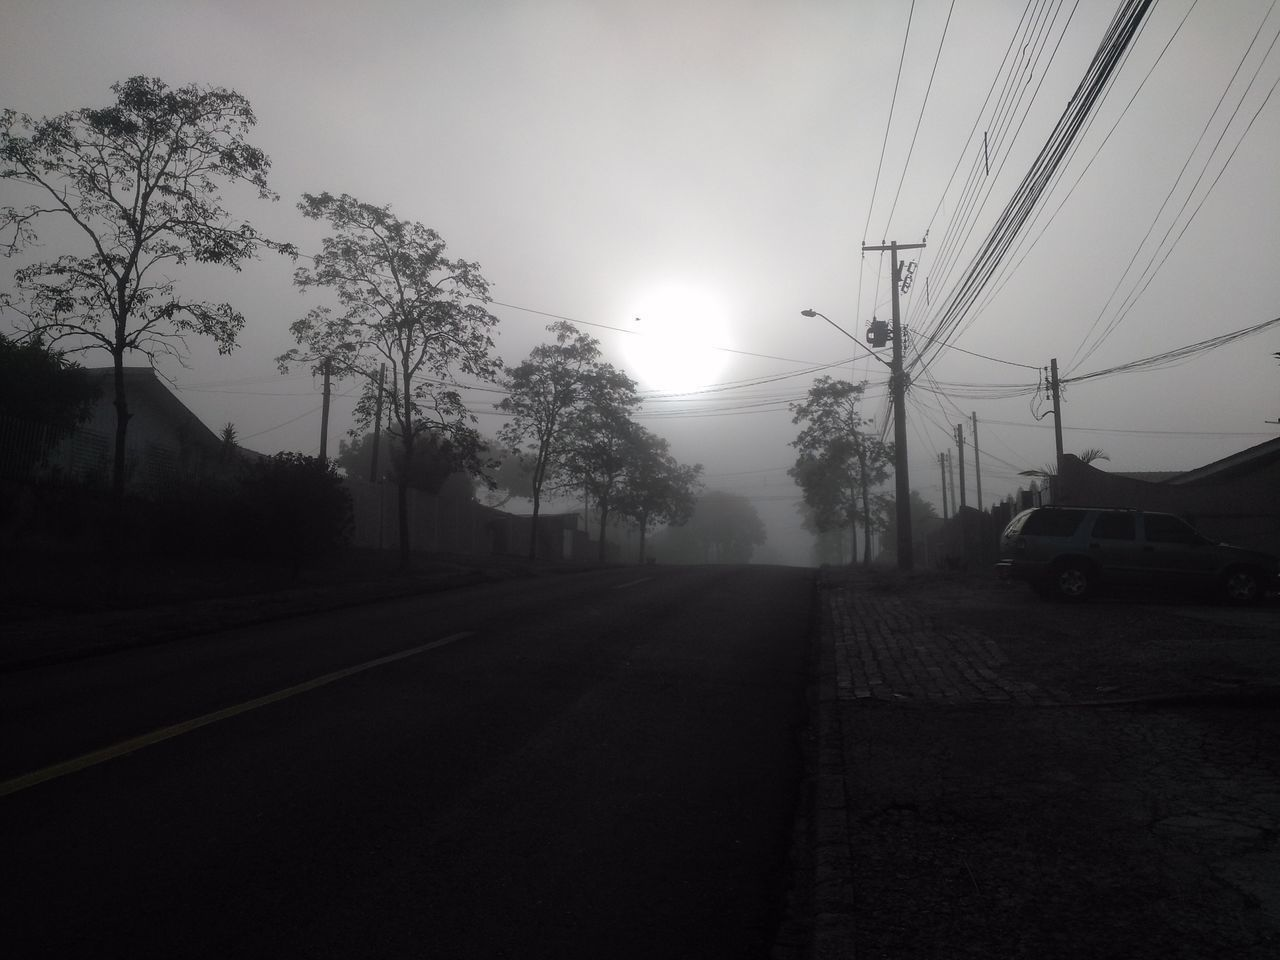 Fog Tree No People Cable Outdoors Telephone Line Landscape Rural Scene Nature Sky Electricity Pylon Day Neblina